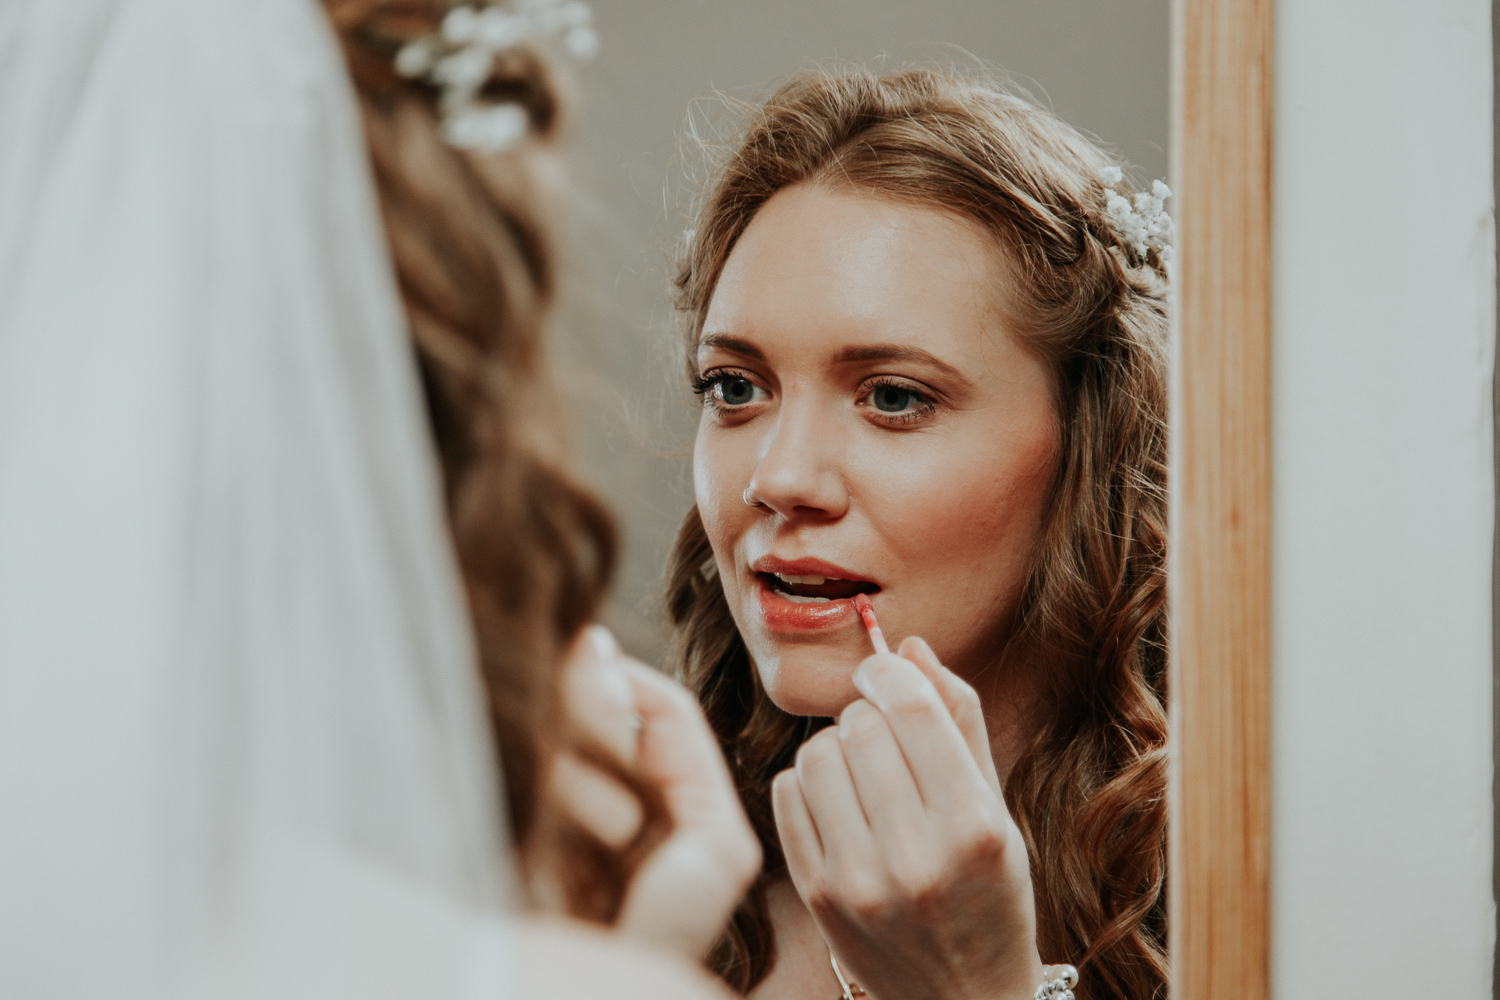 lethbridge-wedding-photographer-love-and-be-loved-photography-dan-tynnea-picture-image-photo-20.jpg